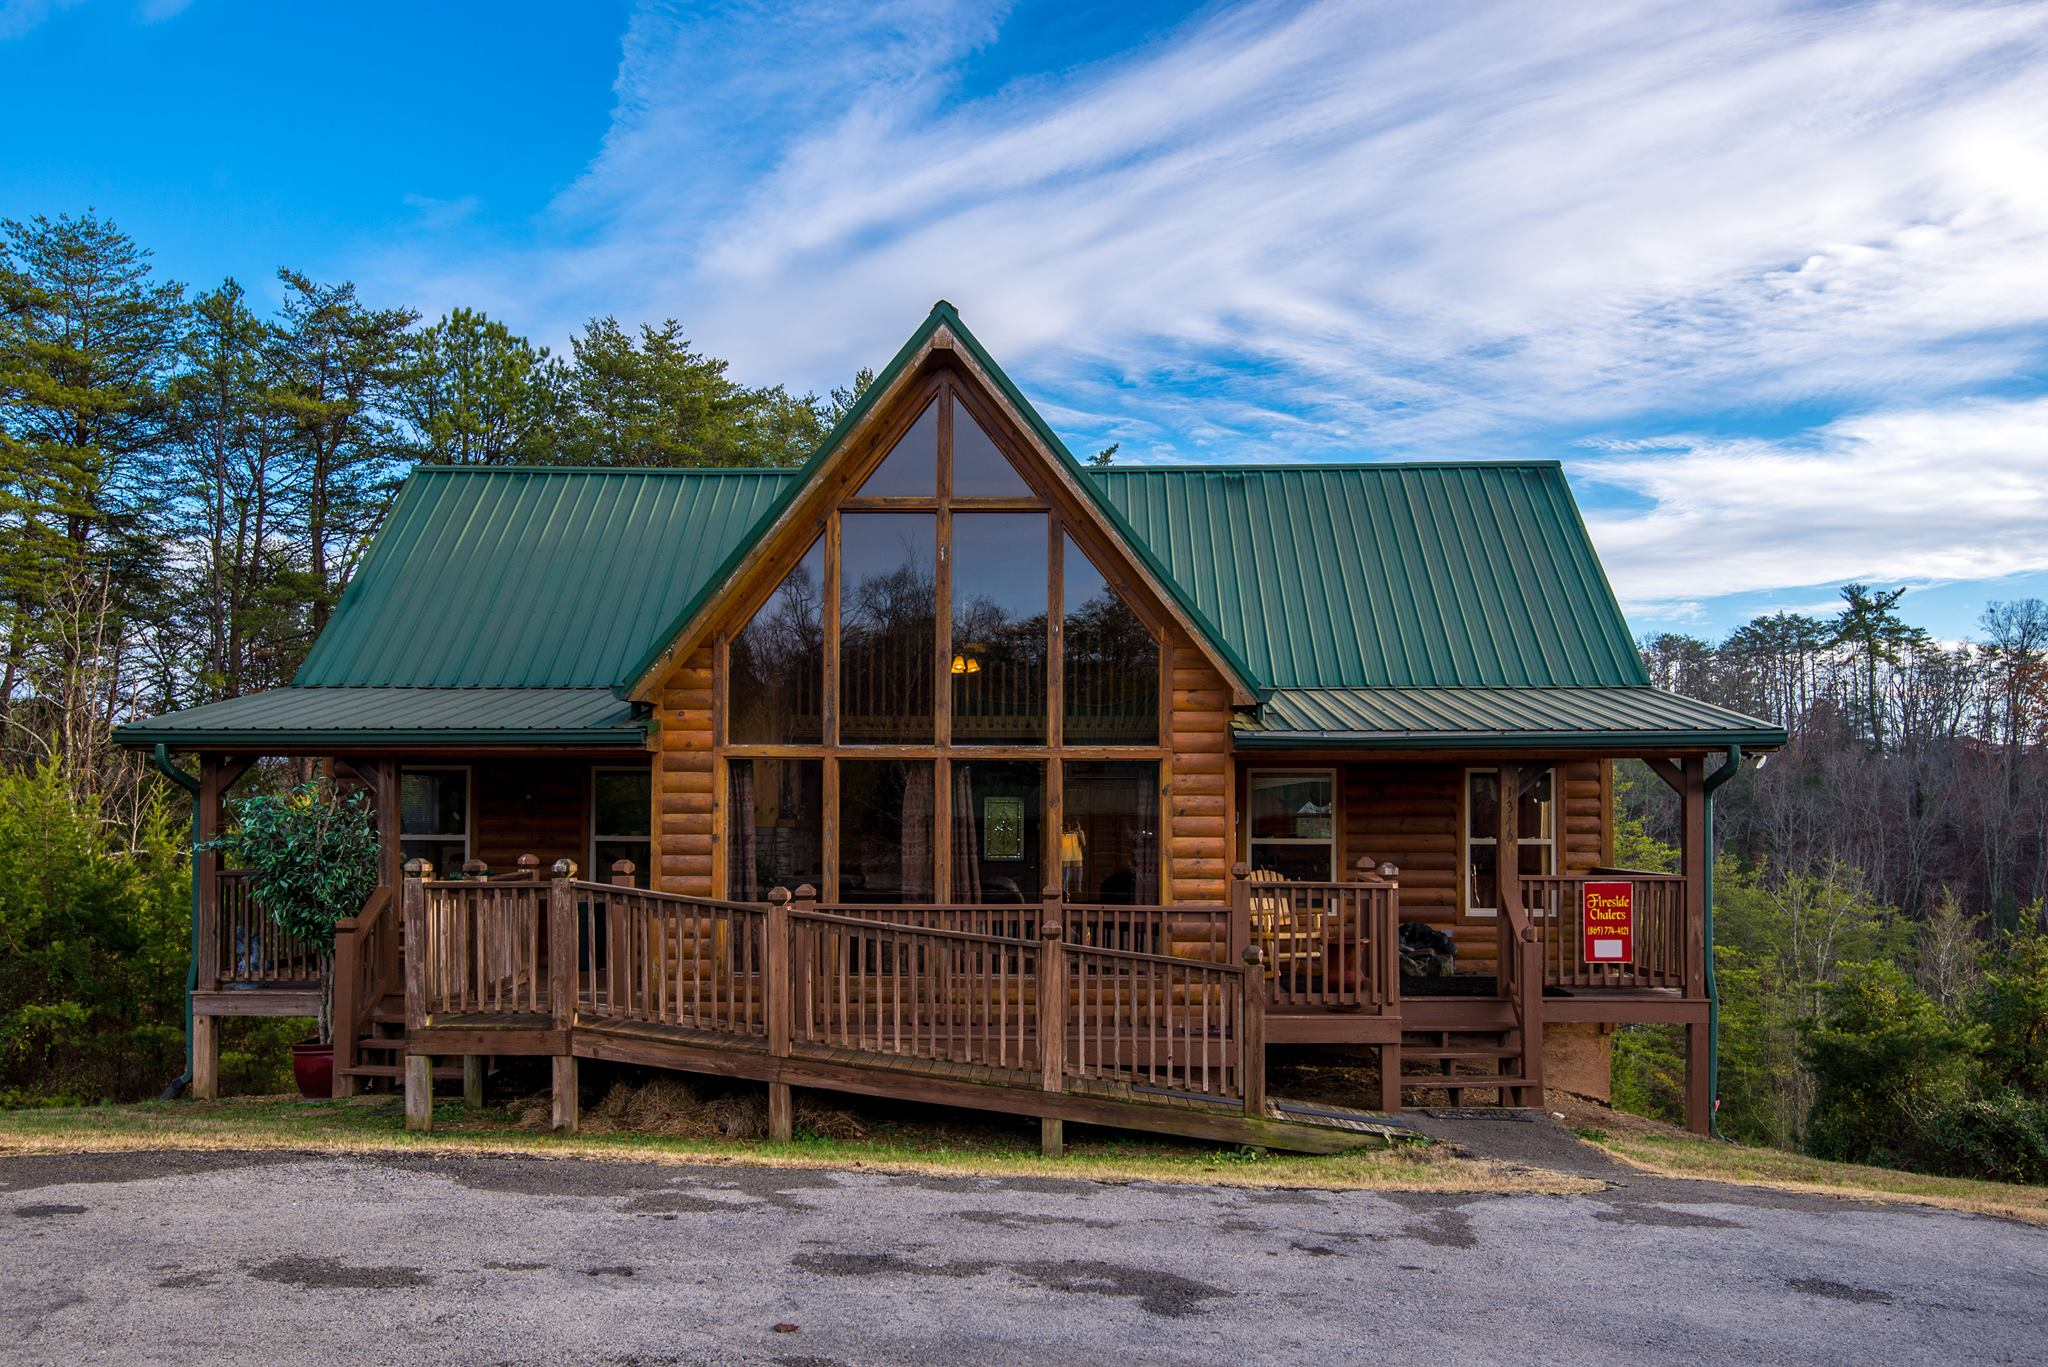 bluff mountain wireless rentals bedroom cabins chalet cabin wifi and honeymoon rental one fireside american with internet access forge pigeon